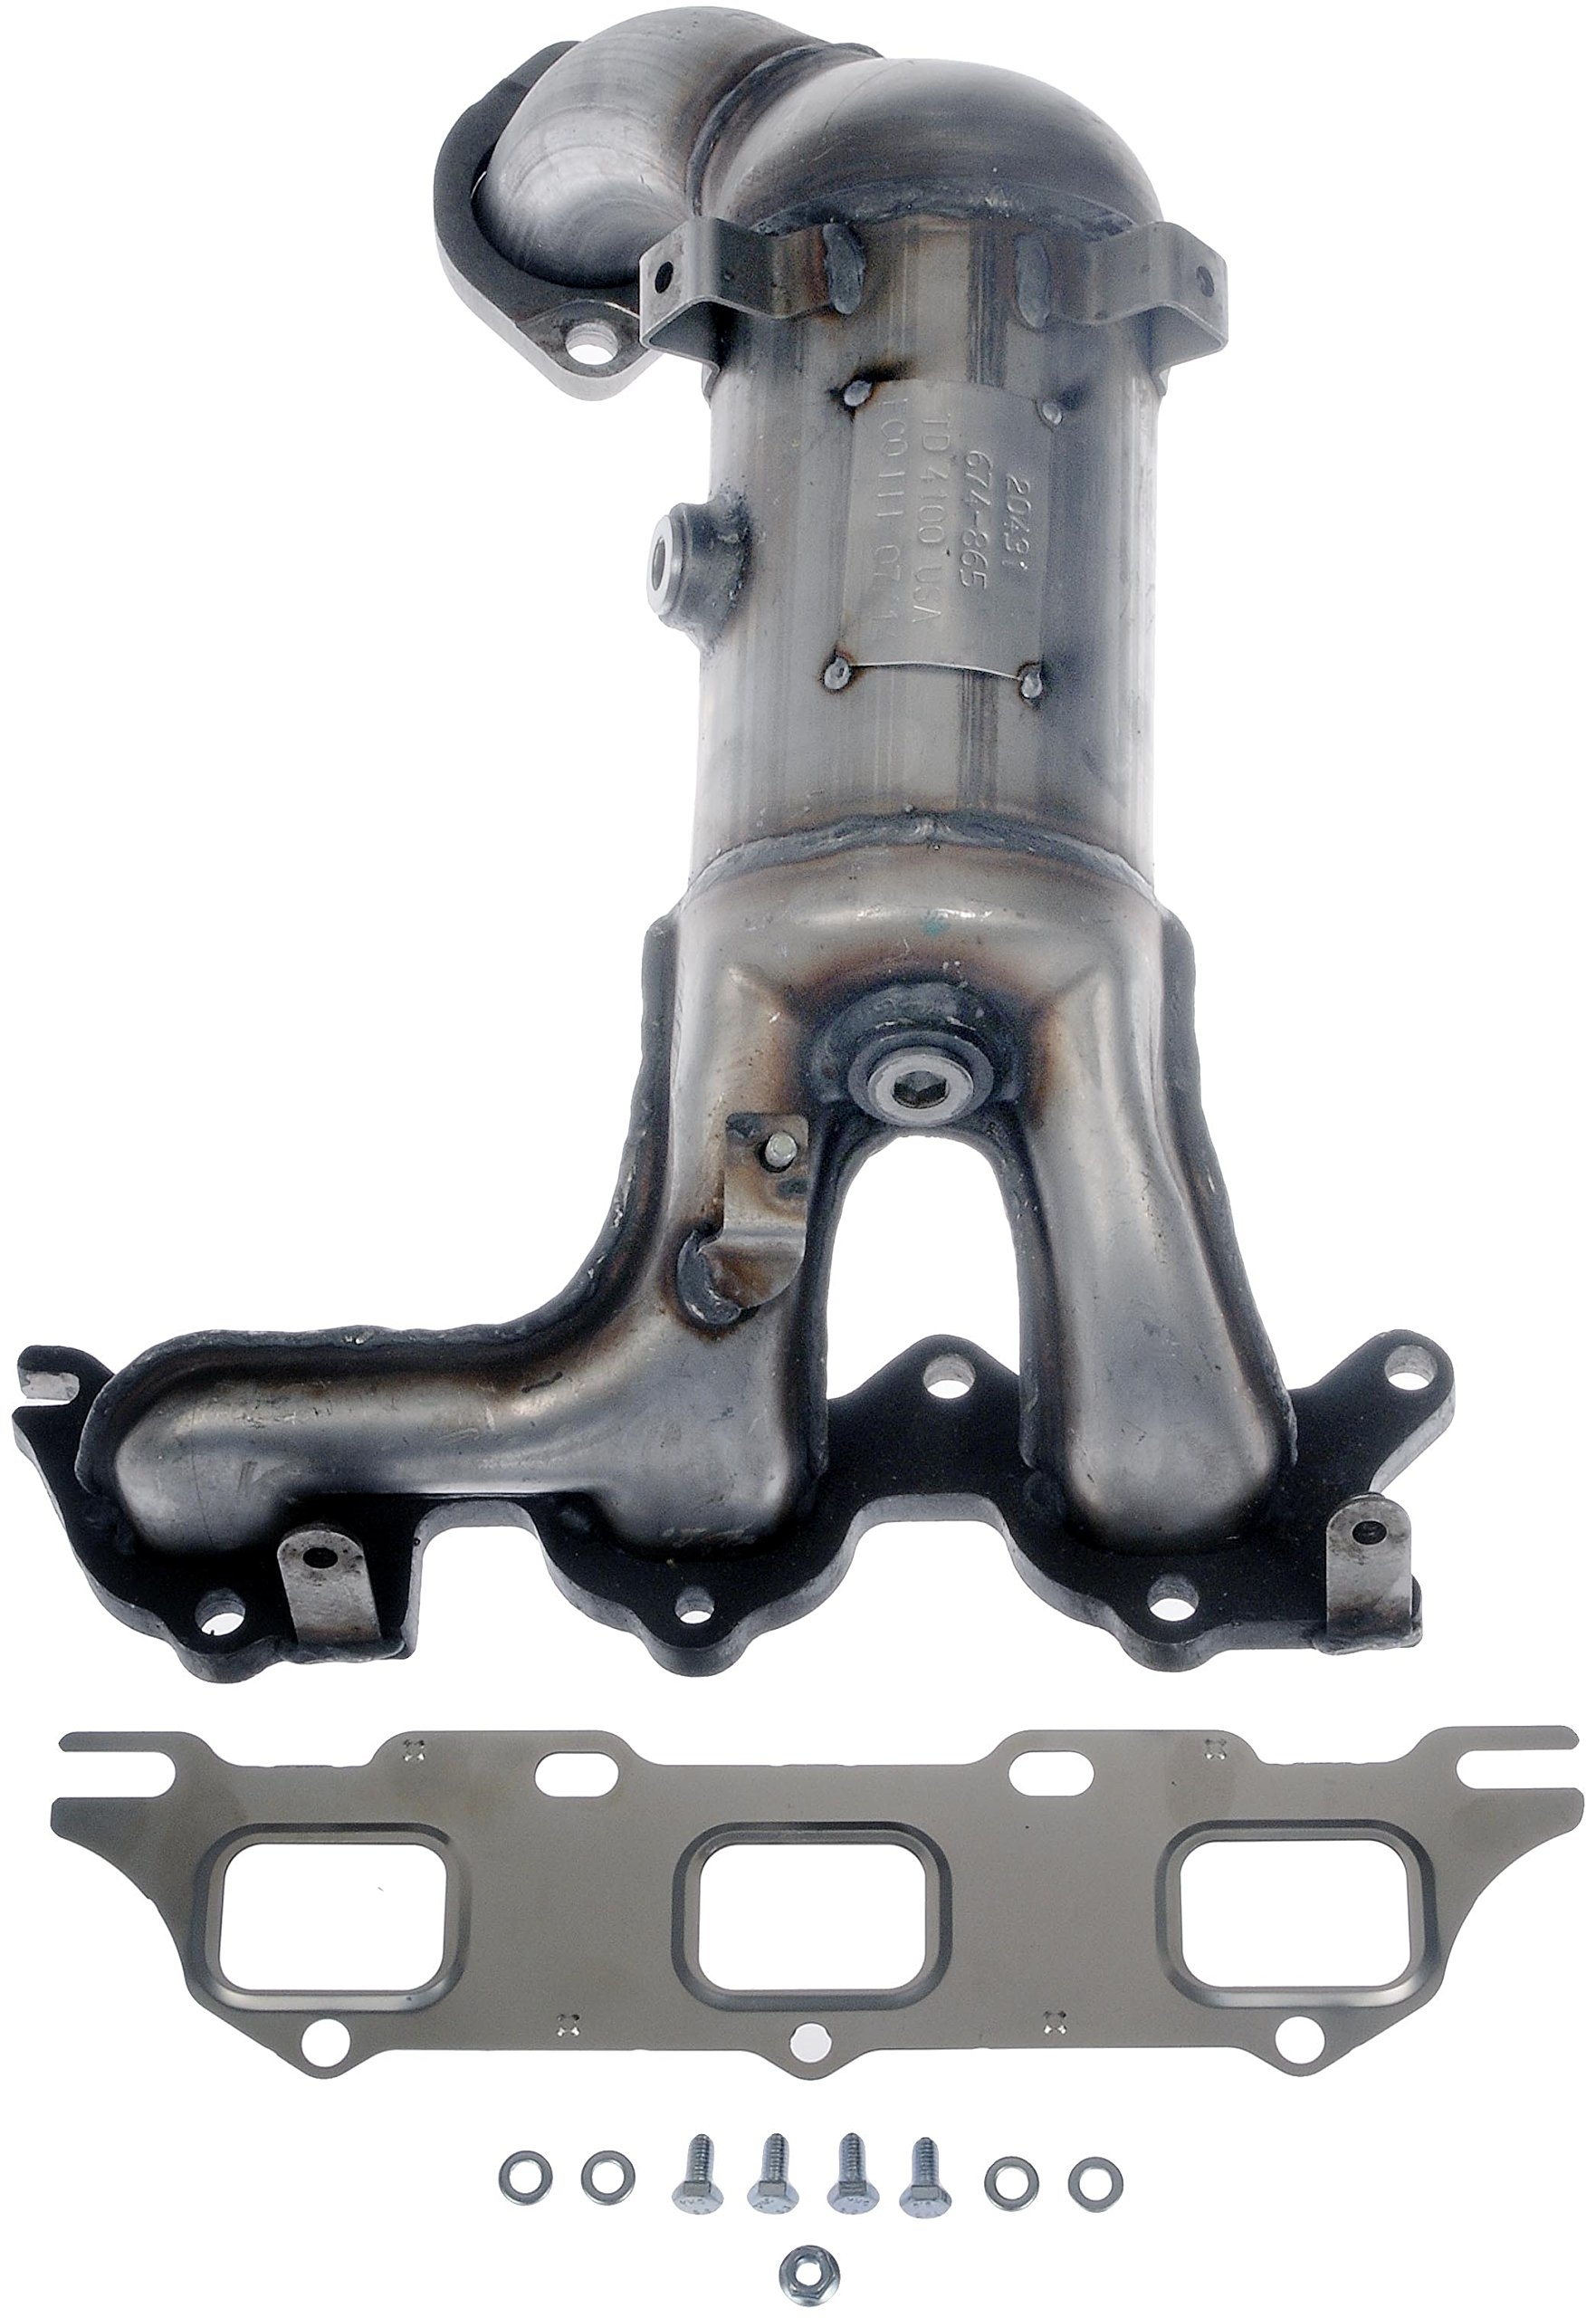 Dorman 674-865 Exhaust Manifold with Integrated Catalytic Converter (Non CARB Compliant)